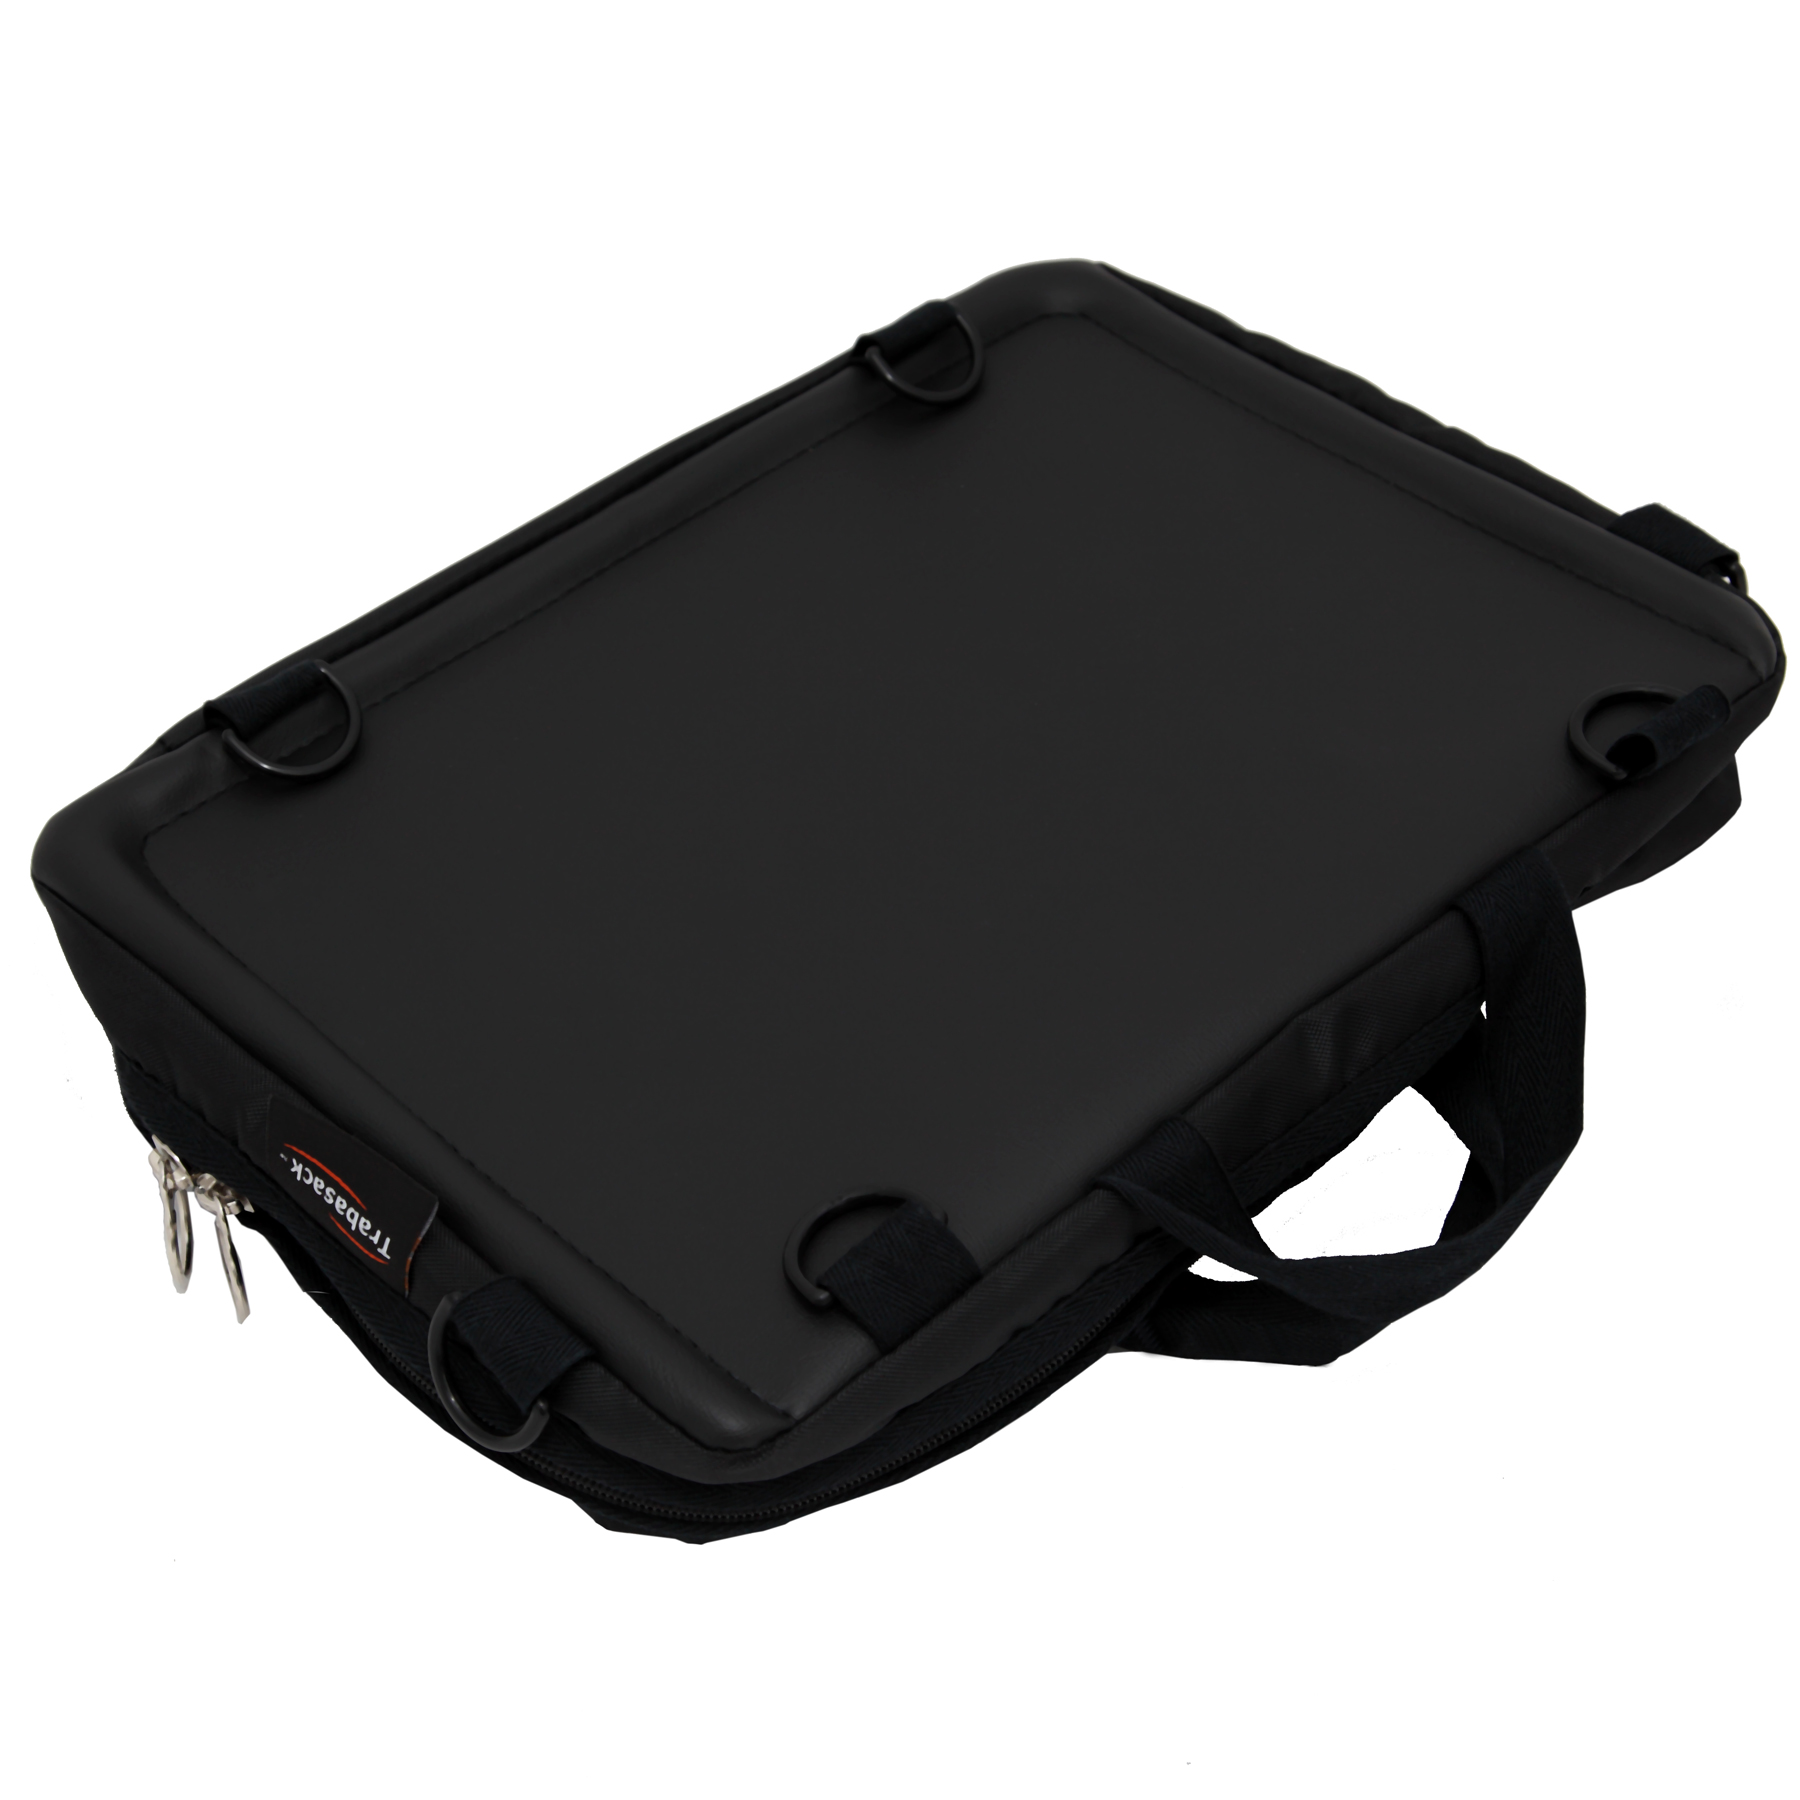 Image shows the tray side of the Trabasack Mini